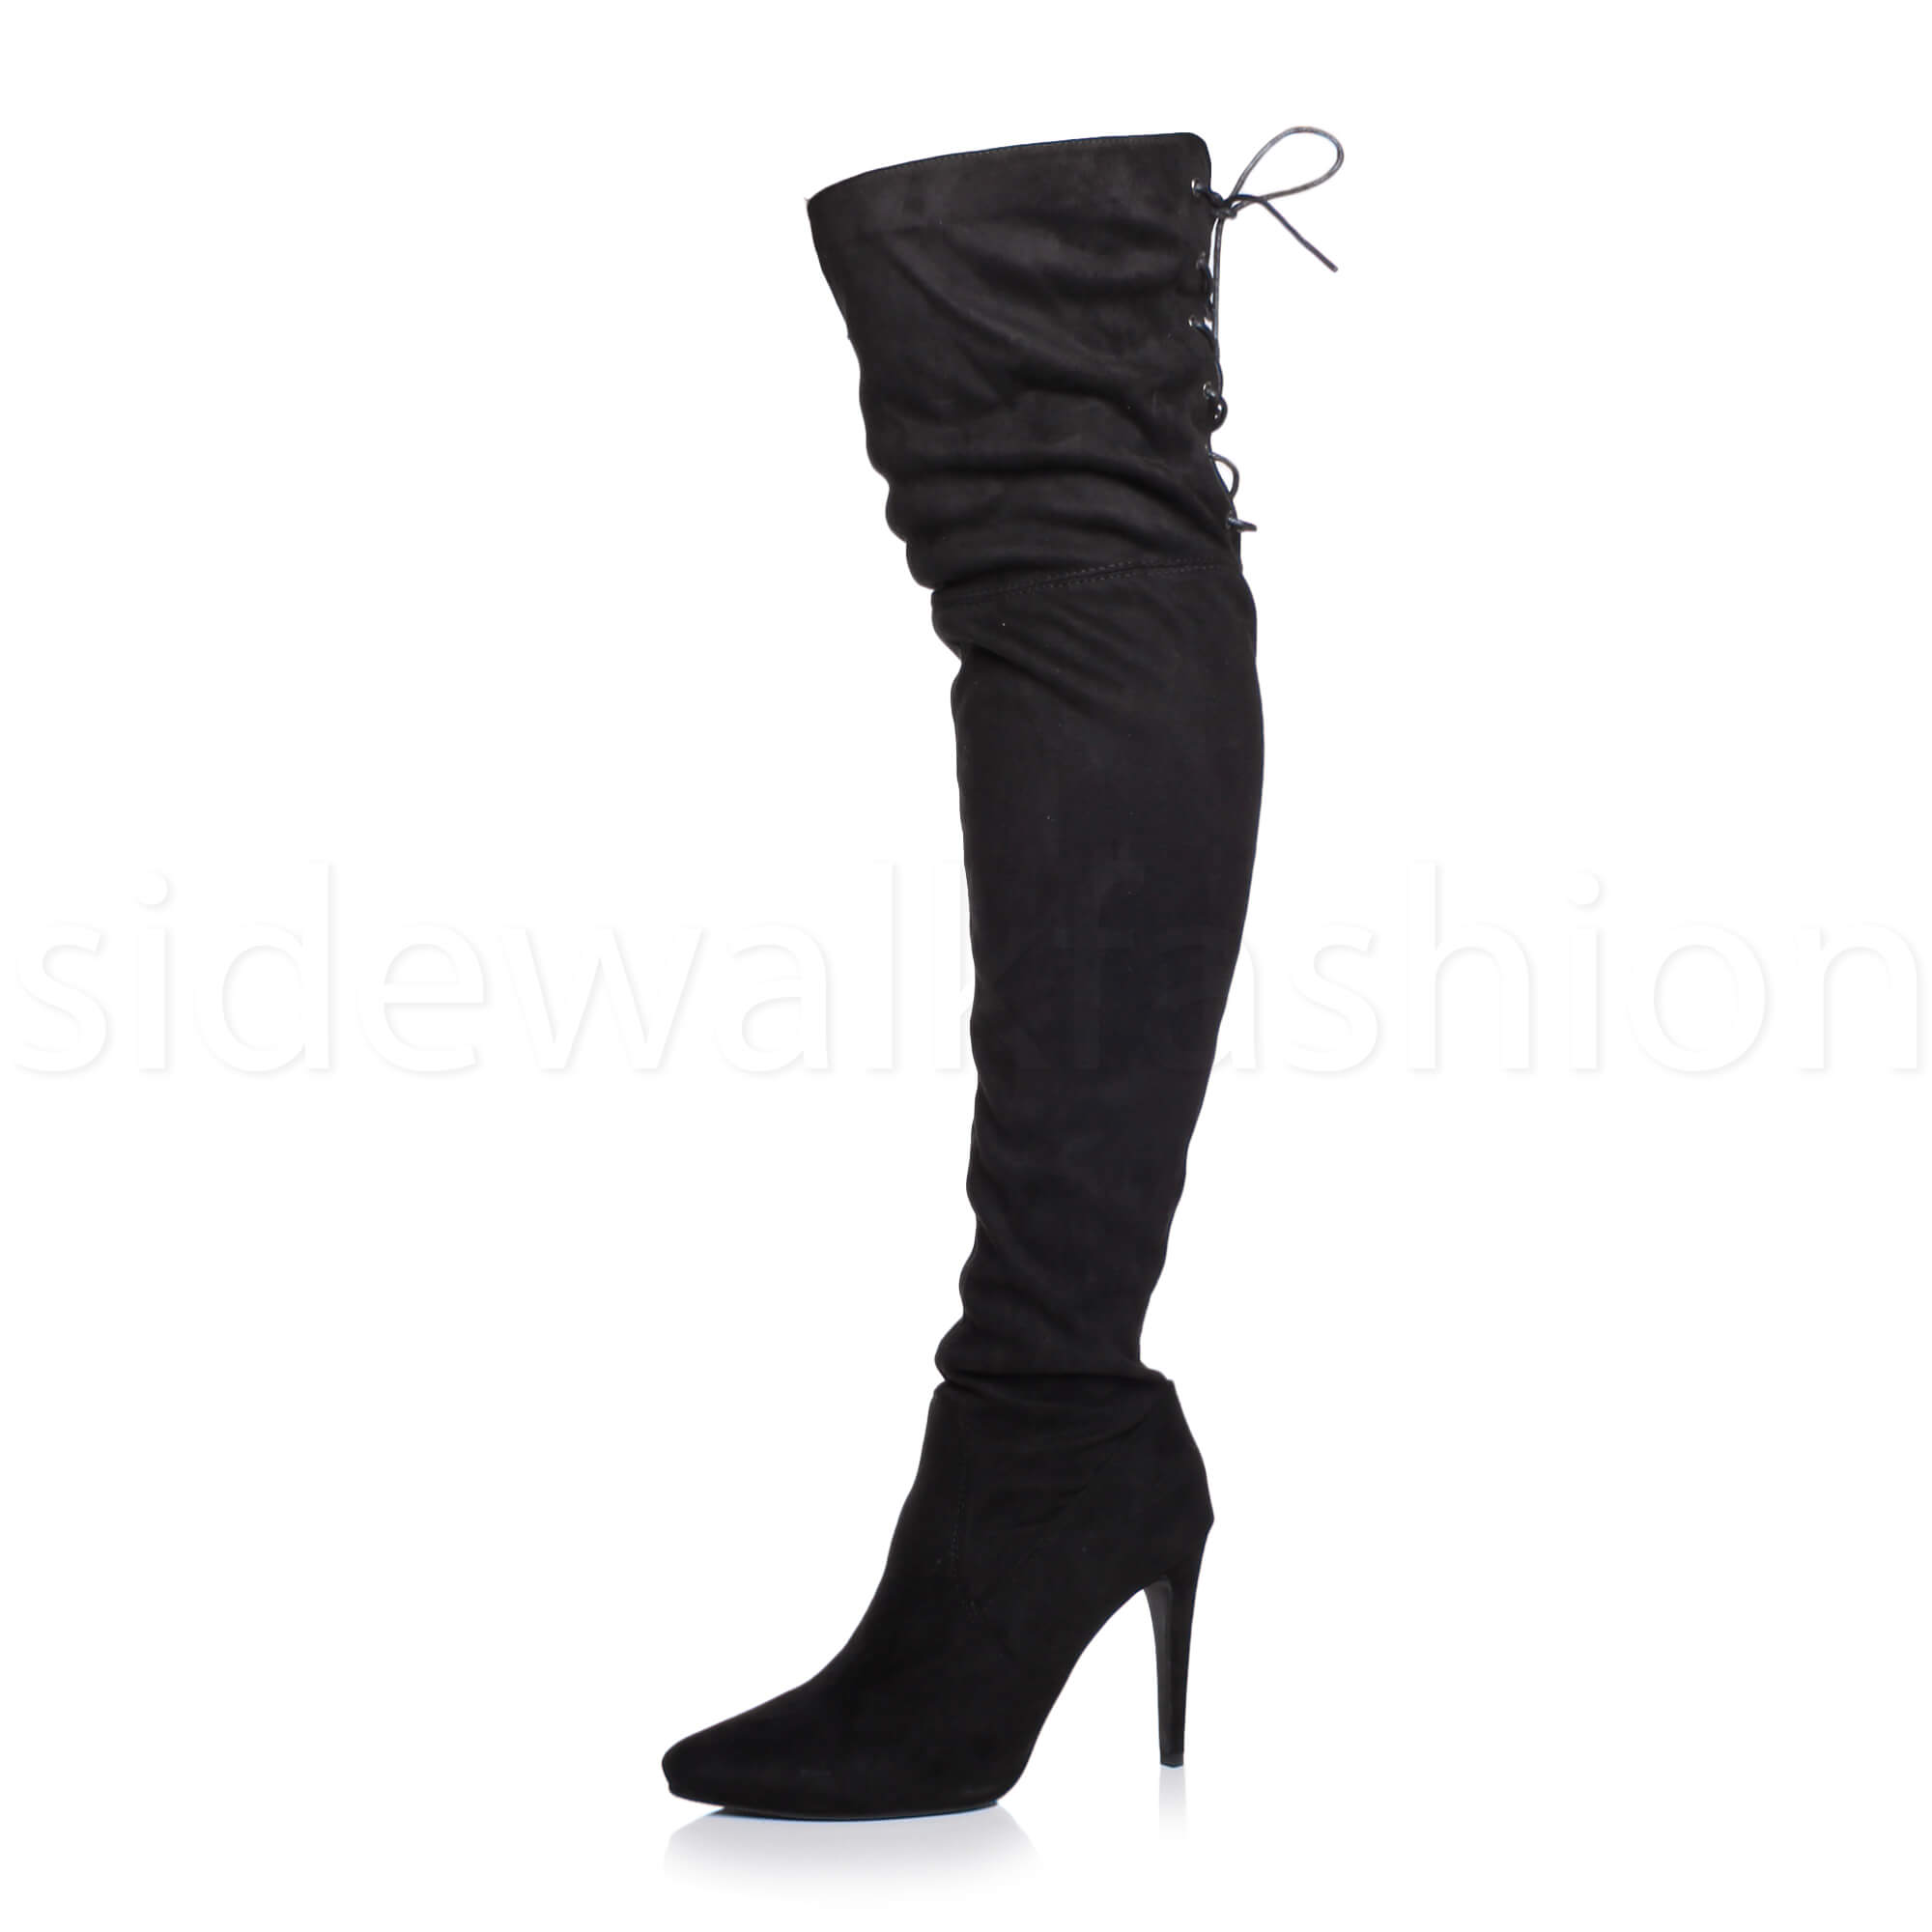 4b2bc257450 ... High Heel Pointed Over The Knee Stretch Thigh BOOTS Size UK 4   EU 37    US 6 Black Suede Lace up. About this product. Picture 1 of 6  Picture 2 of  6 ...